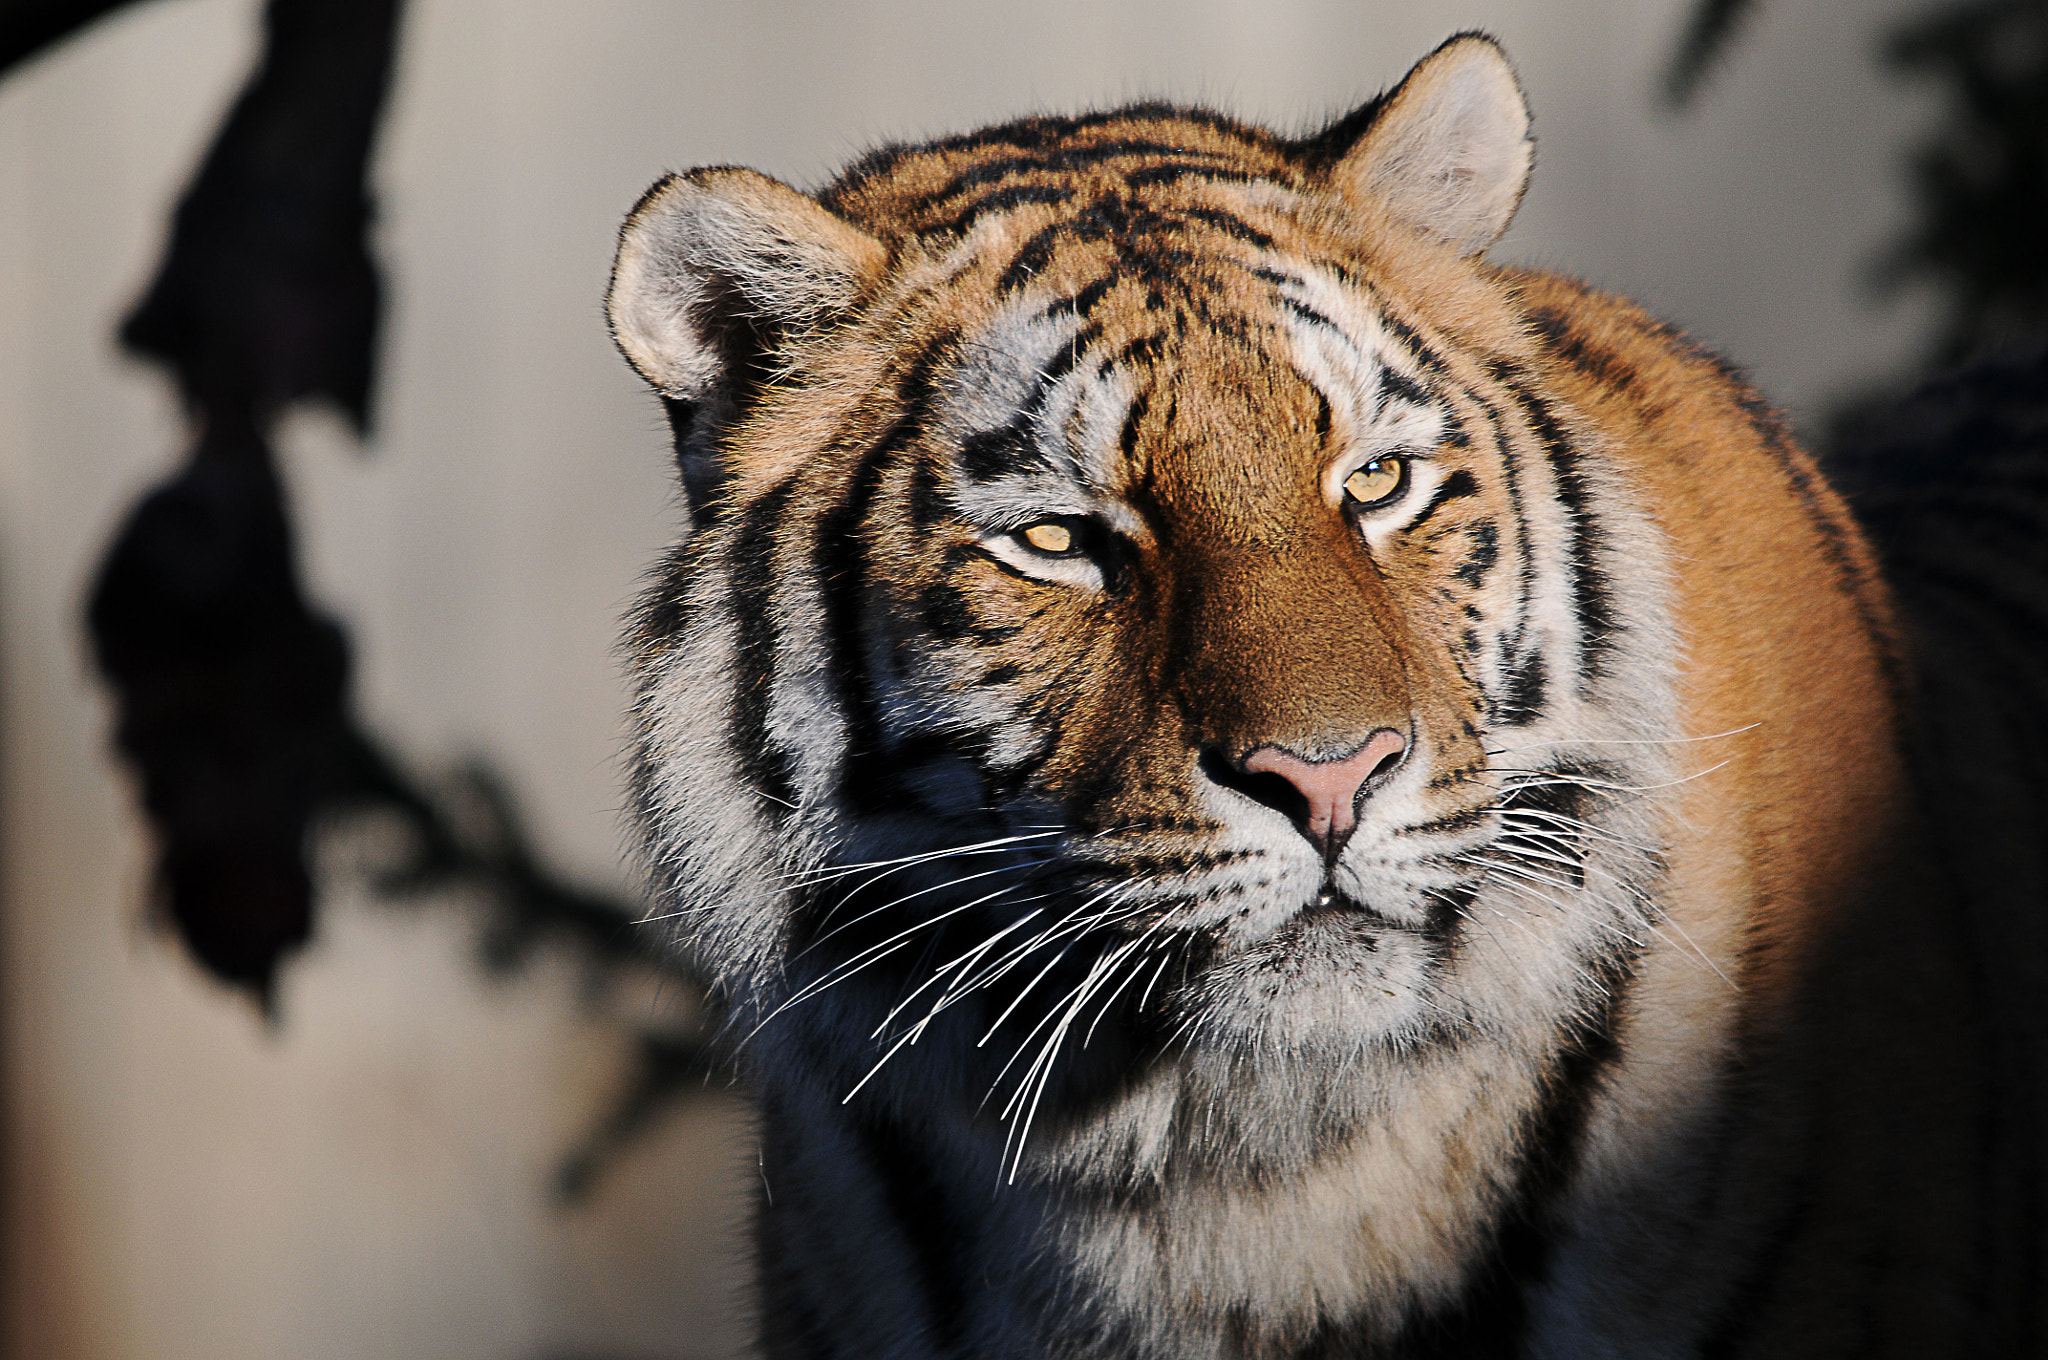 Photograph Tiger by Tommy Foley on 500px